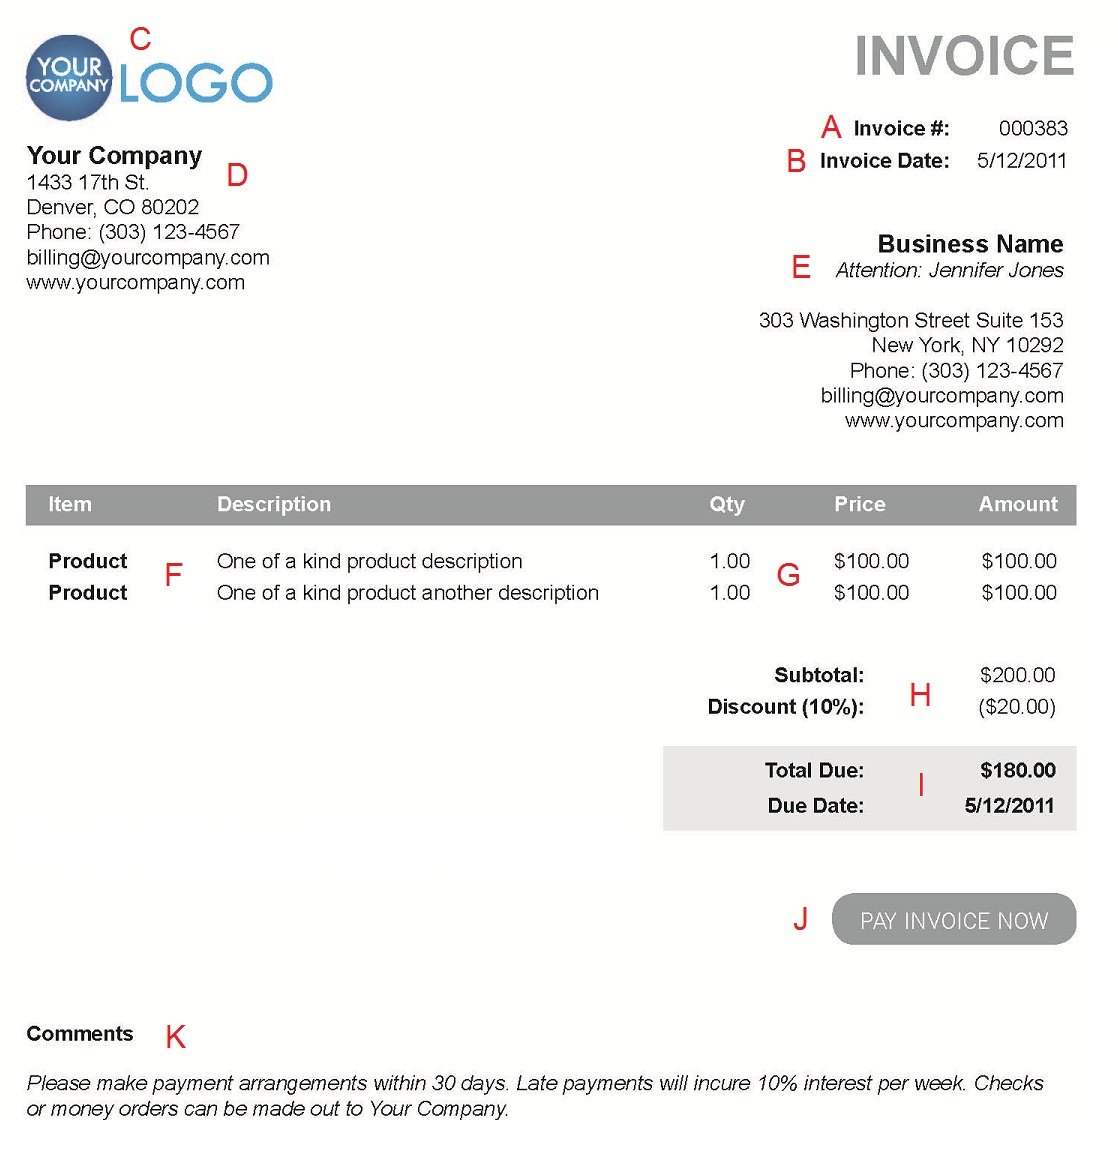 Christianhomebusinessus  Sweet The  Different Sections Of An Electronic Payment Invoice With Handsome A  With Astounding Receipt For Car Sale Template Also Apcoa Receipts In Addition Electronic Ticket Receipt And Boots Return Policy Without Receipt As Well As Receipt Confirmation Letter Additionally Receipt Papers From Paysimplecom With Christianhomebusinessus  Handsome The  Different Sections Of An Electronic Payment Invoice With Astounding A  And Sweet Receipt For Car Sale Template Also Apcoa Receipts In Addition Electronic Ticket Receipt From Paysimplecom